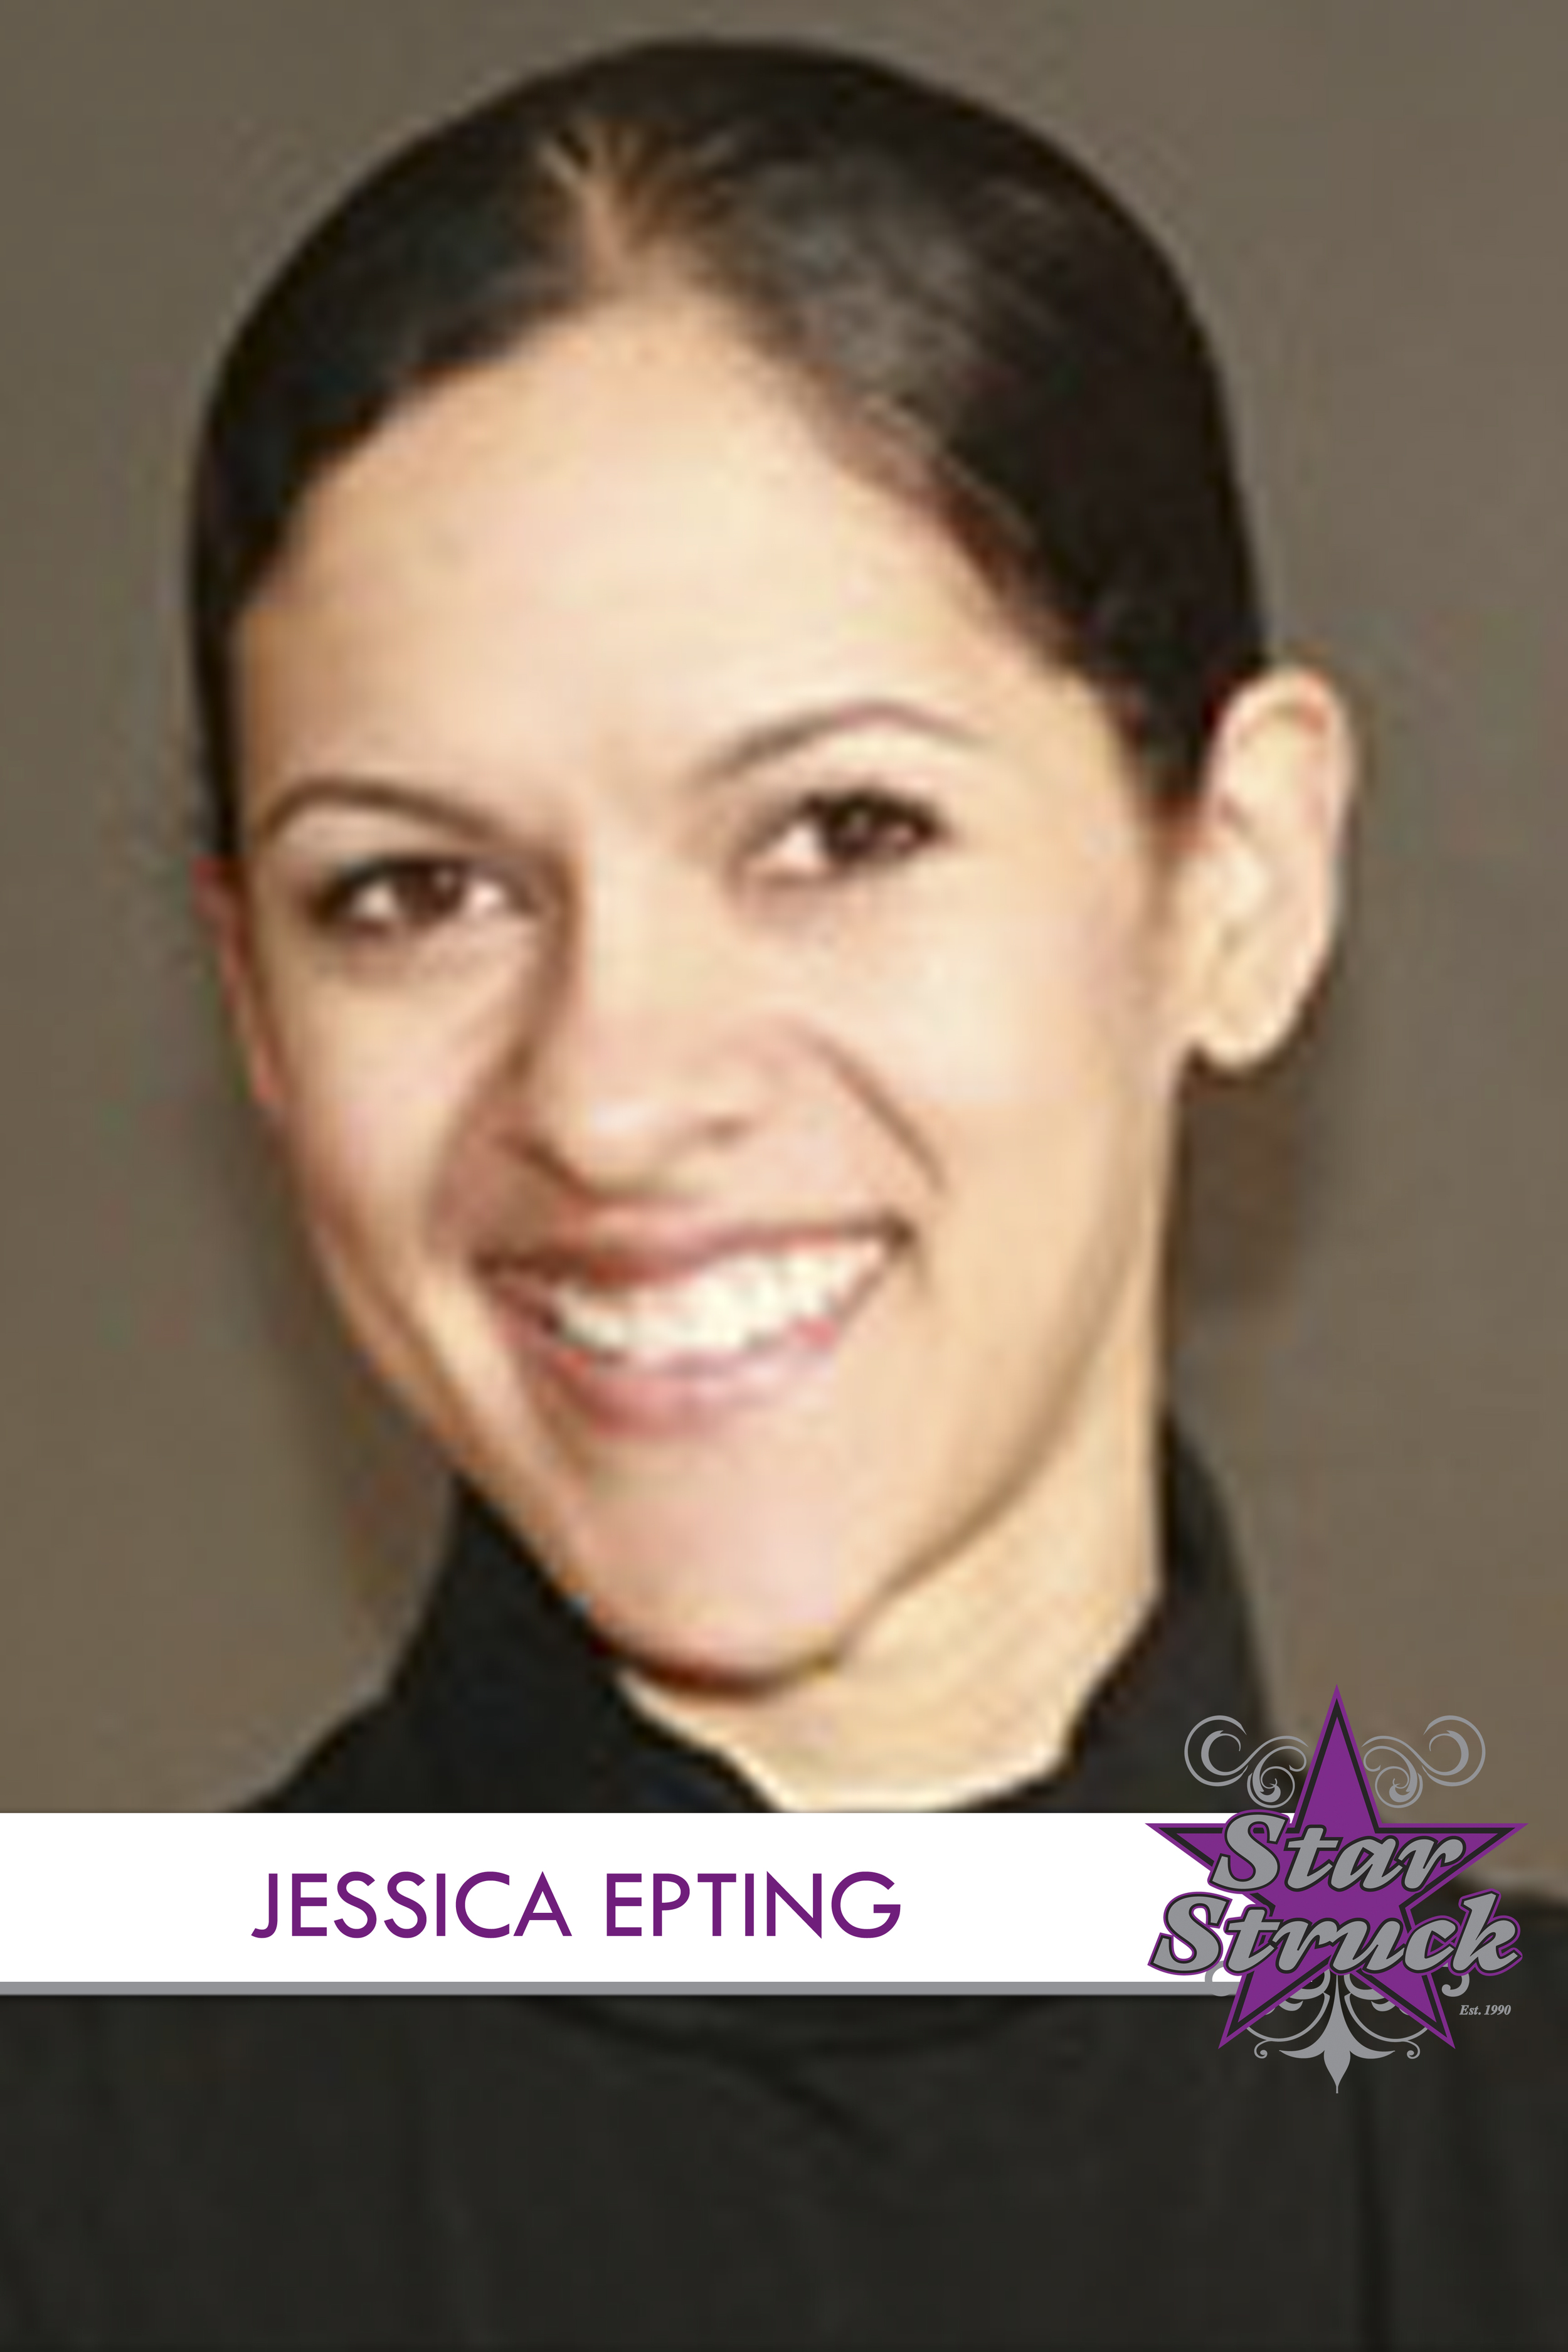 JESSICA EPTING   Jessica Epting's goal is to create and inspire a love for ballet in all of her students while promoting a high standard of excellence. In her classes students learn classical ballet including all the French terminology, and ballet history. Miss J's students learn that challenging themselves both physically and mentally is one of the many joys of ballet and dance! In 1995, she founded En L'Air Dance Academy in Omaha, where she served as the owner/director and master teacher for six years. She has served as a principal faculty member teaching classical ballet at Omaha Academy of Ballet (Omaha, NE), Metropolitan Ballet Theater (Rockville, MD), Ballet Royale Academy (Columbia, MD), NewDance (Rye, NY), Ballet Hispanico (New York, NY) and The D'Valda, Sirico Dance Centre (Fairfield, CT) and The Boden Performing Arts Center (New York, NY. She is currently on the teaching staff at Broadway Dance Center (New York, NY).